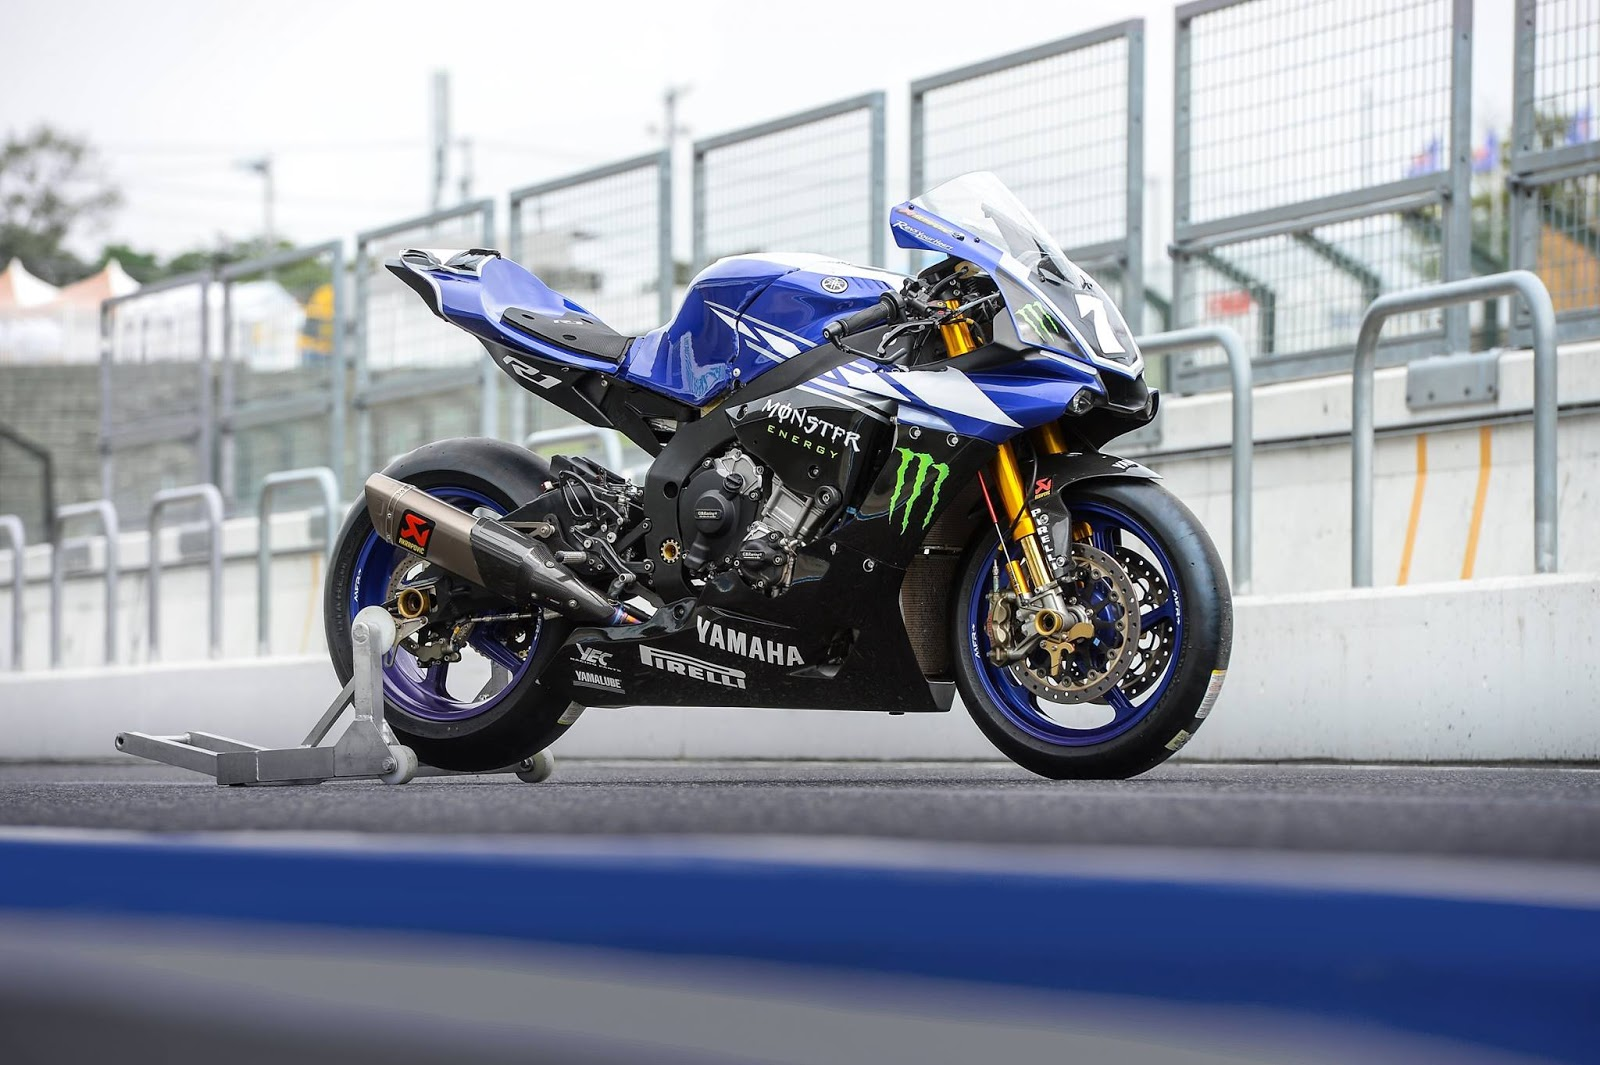 Racing caf yamaha austria racing team 8 hours suzuka 2015 for Yamaha racing team